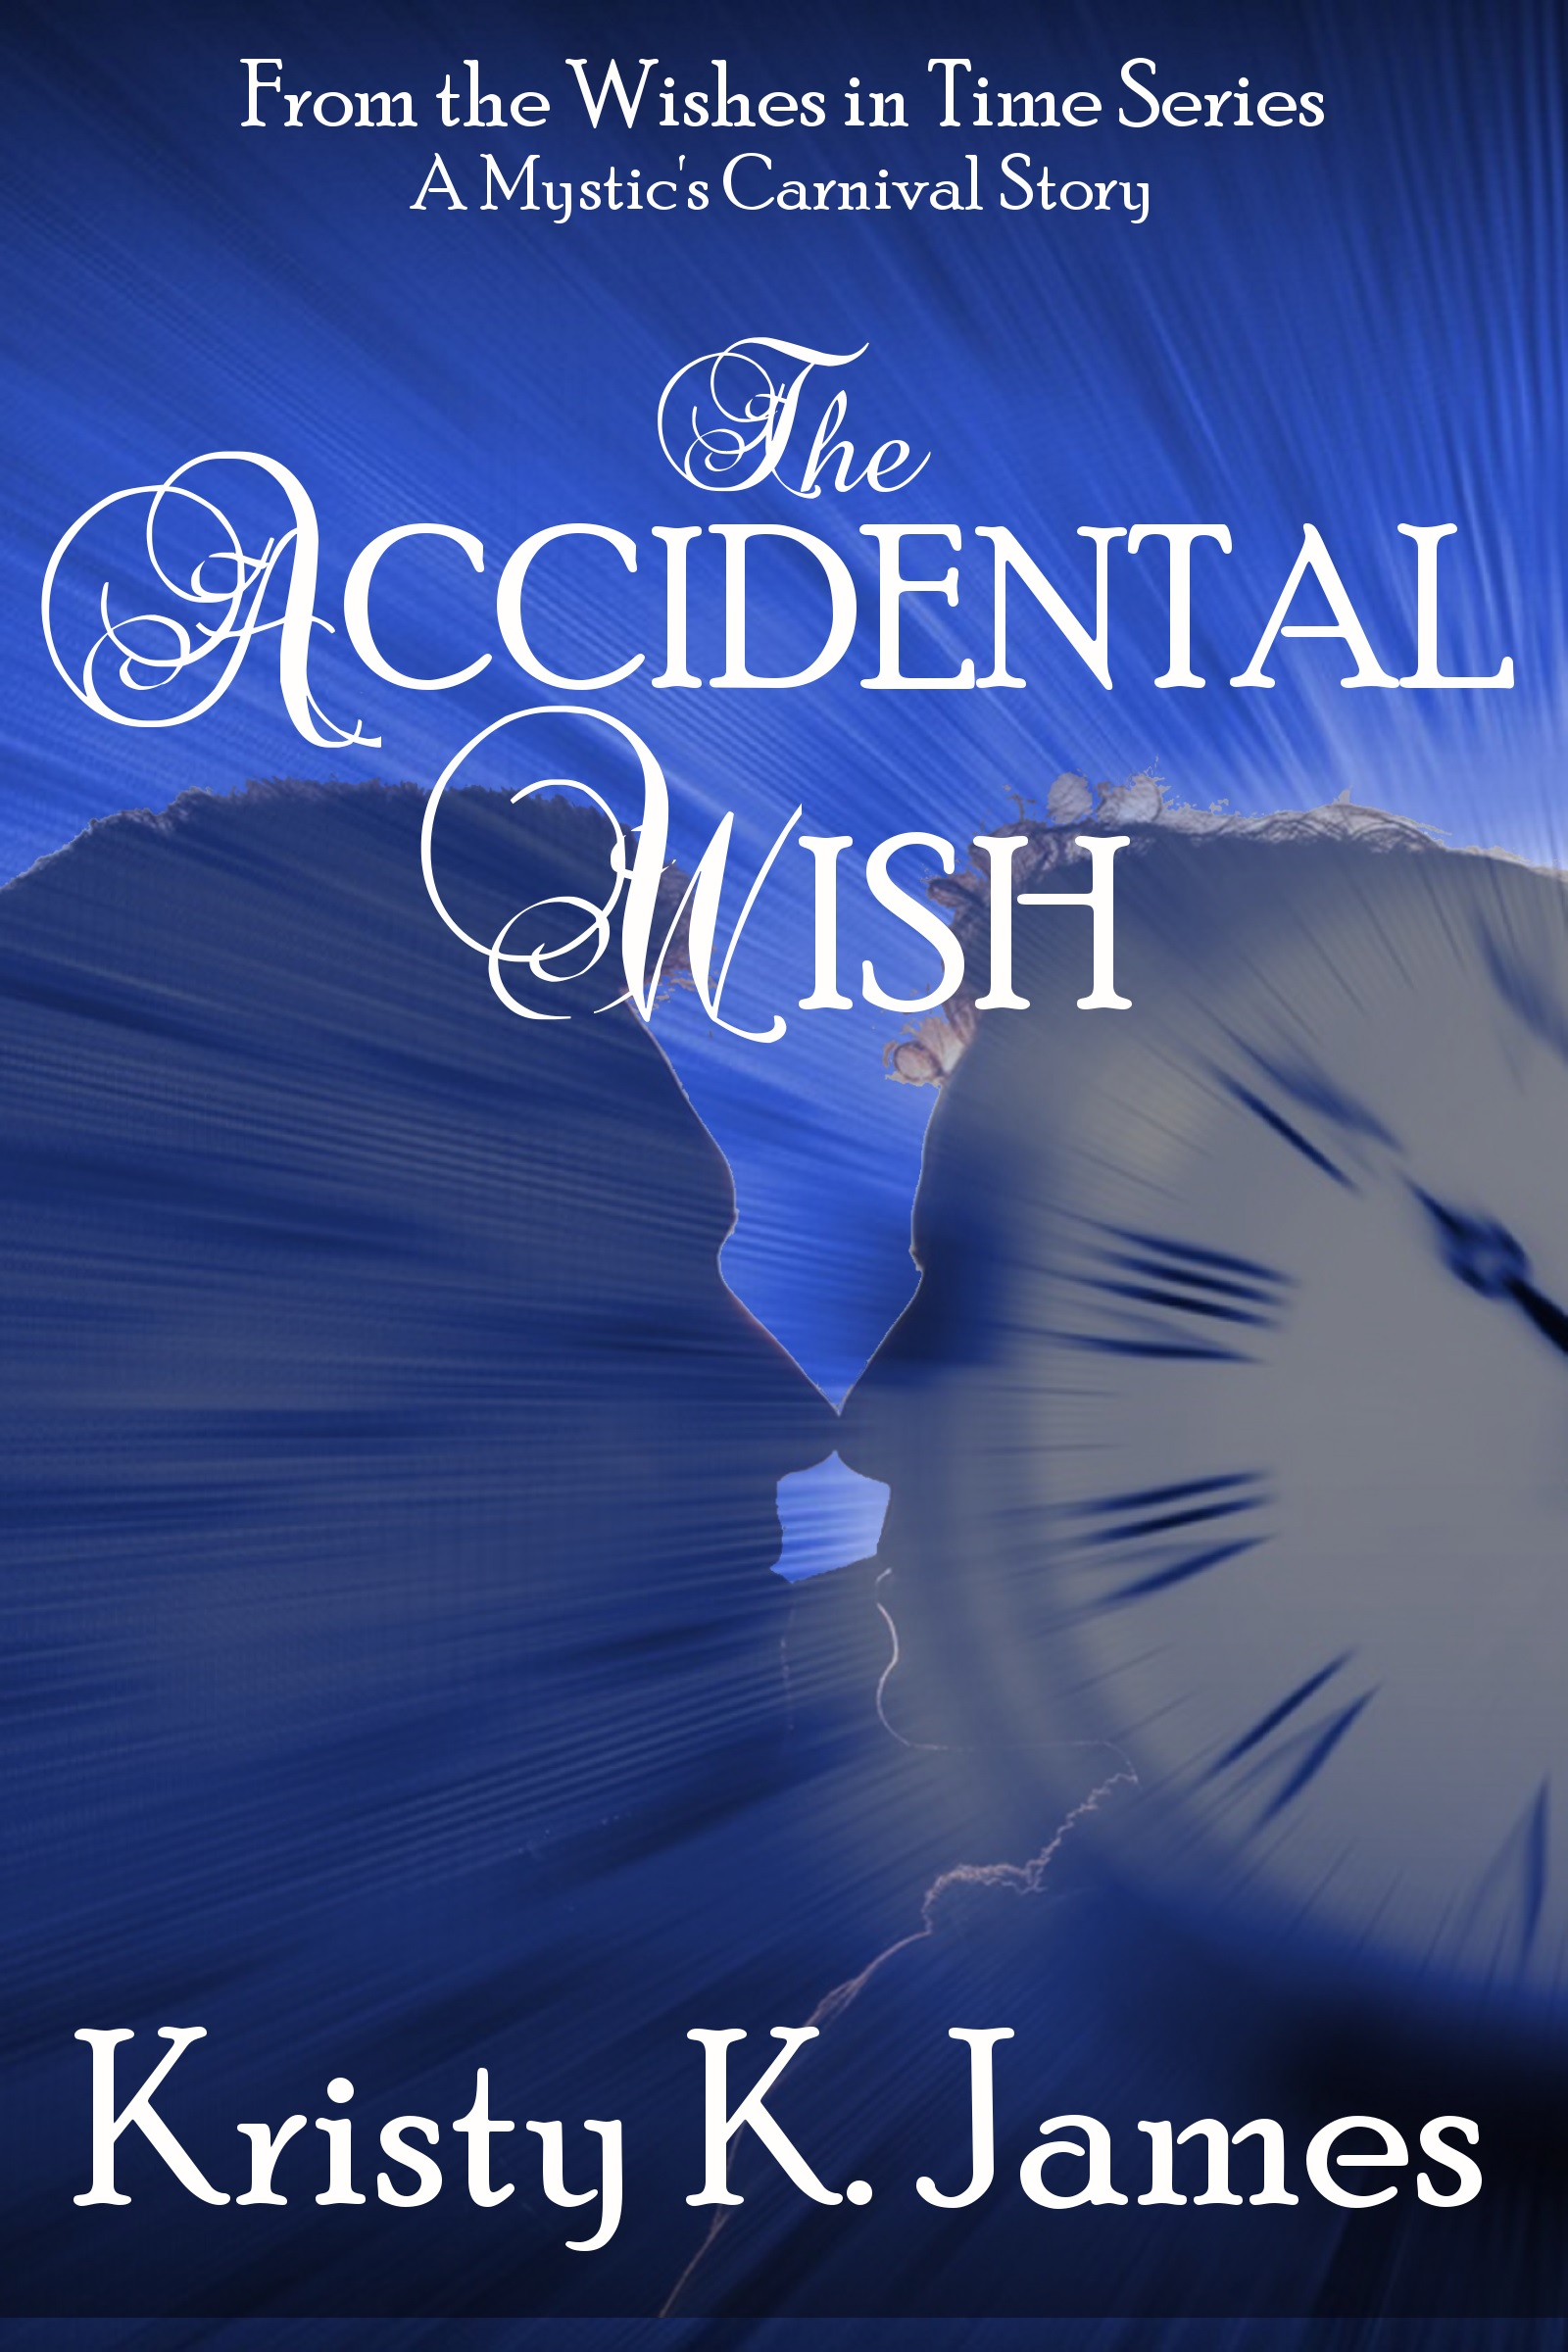 The Accidental Wish by Kristy K. James